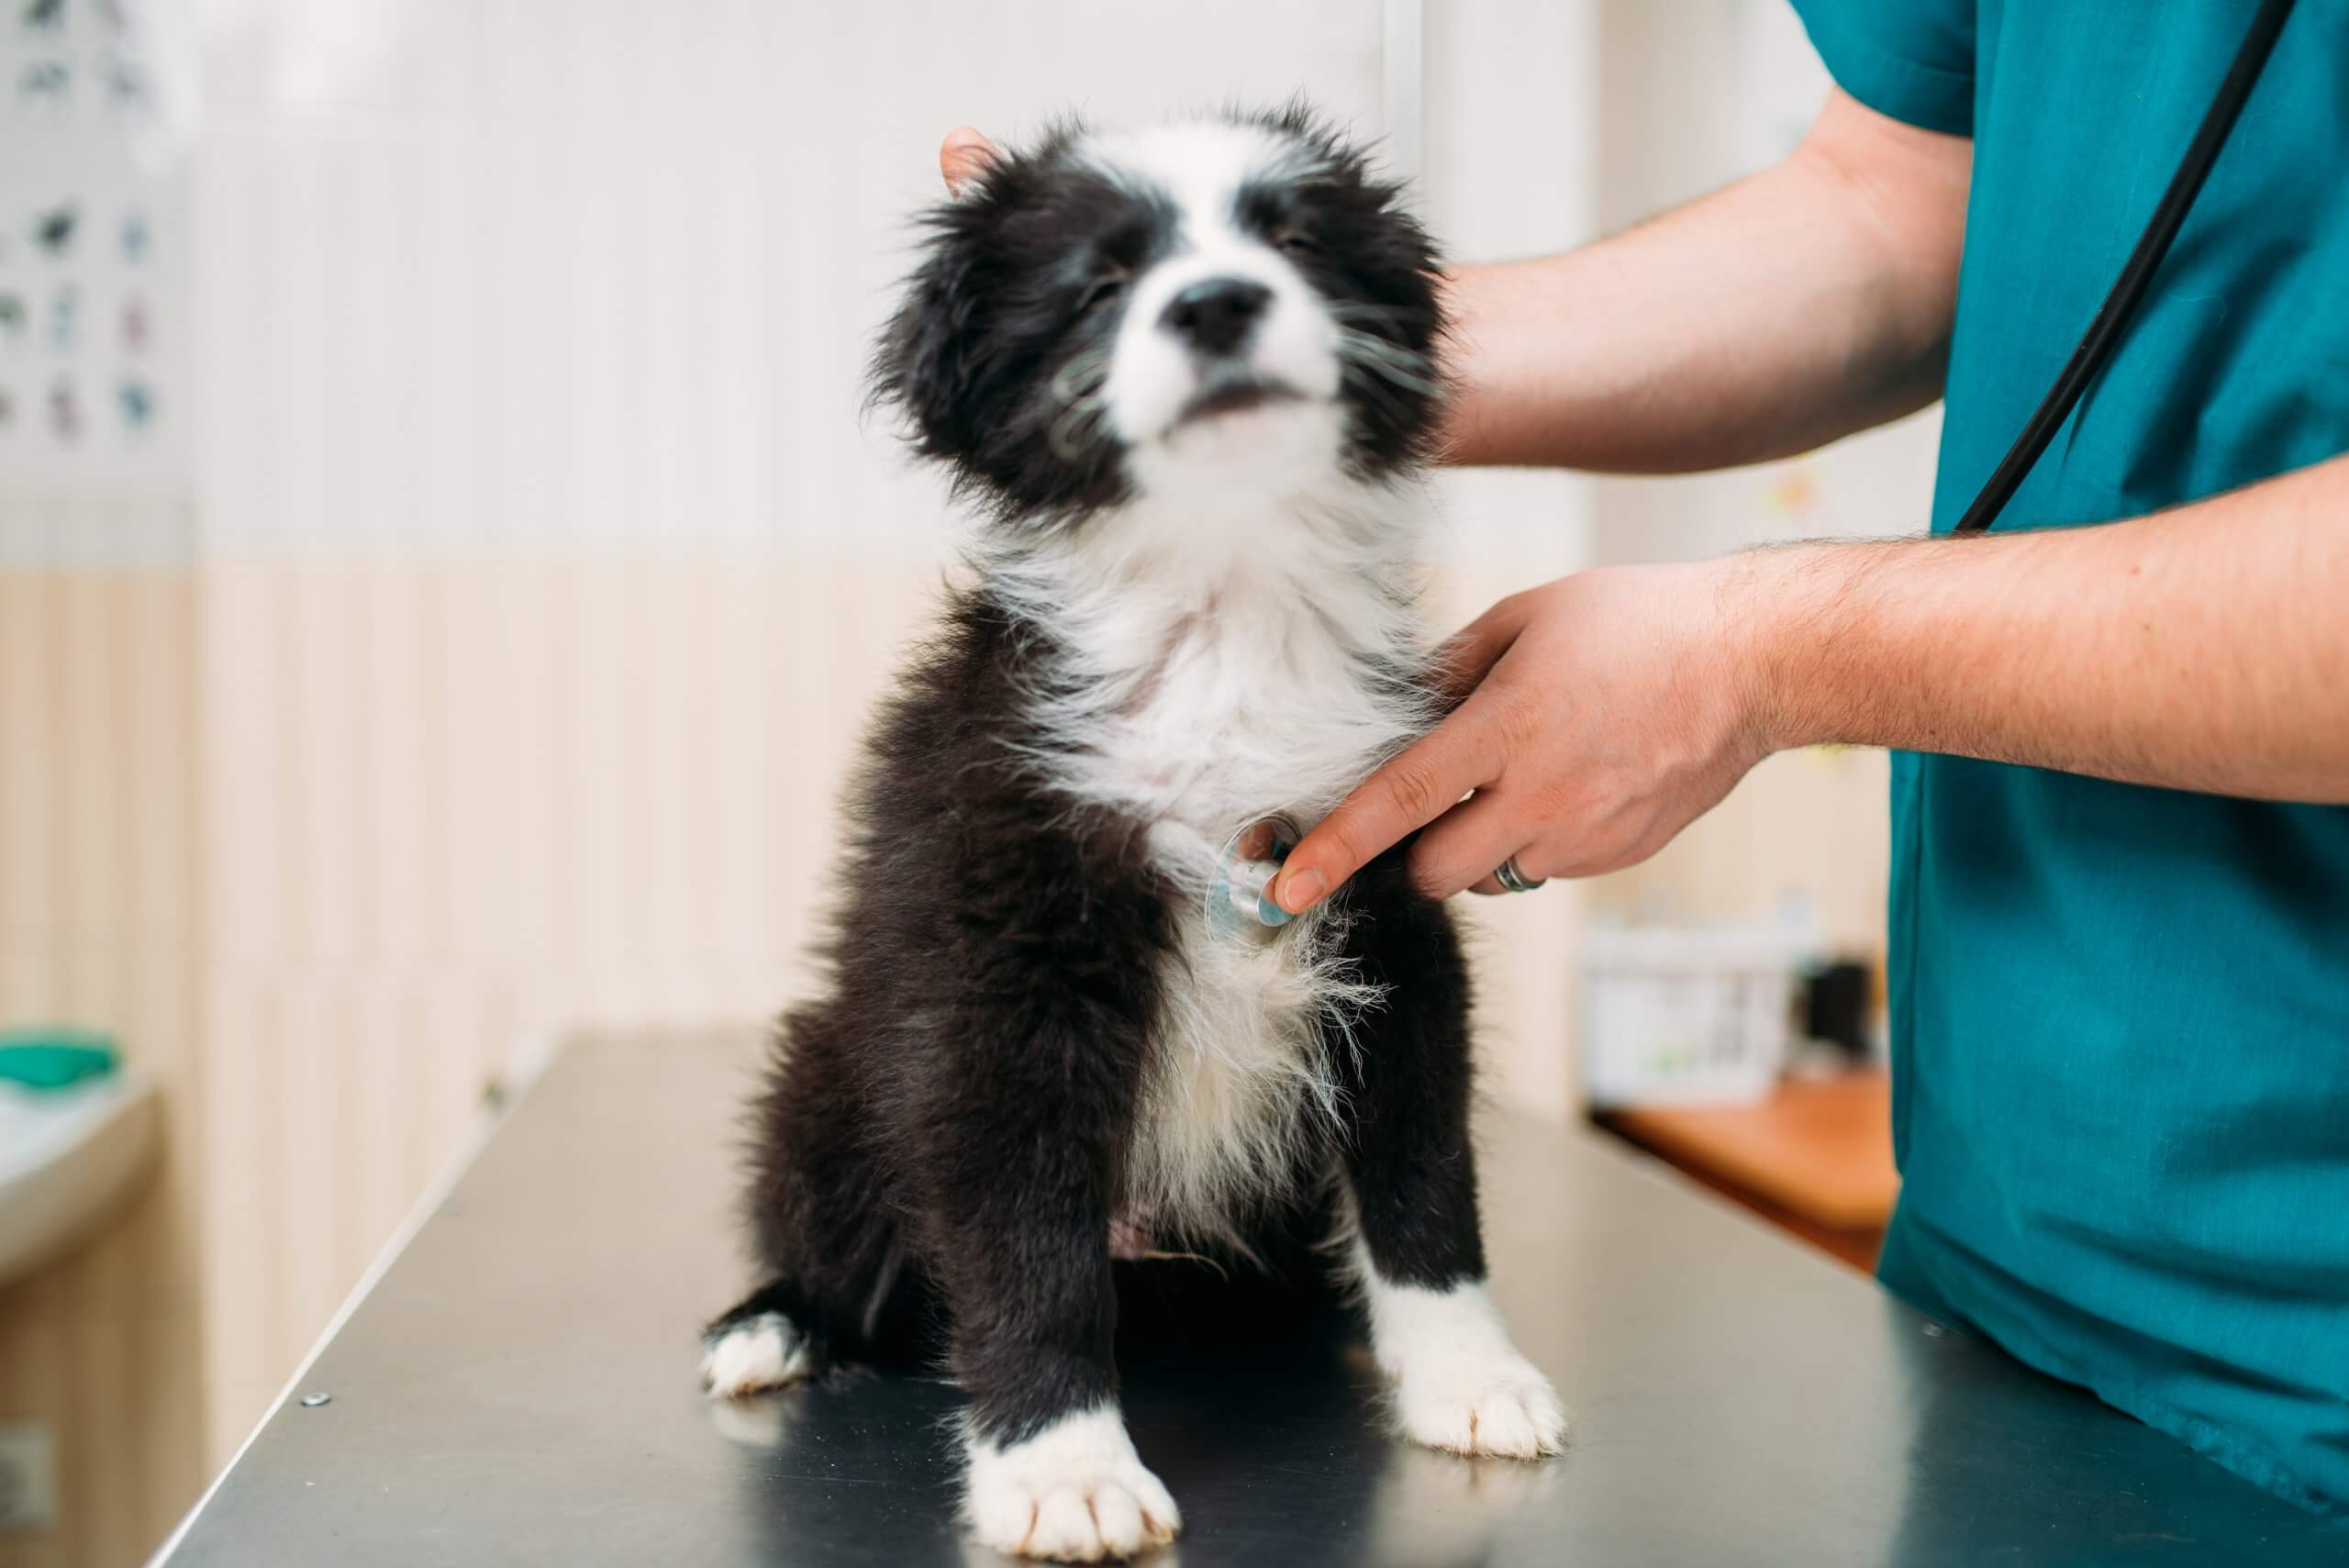 What To Know About the Dog Flu